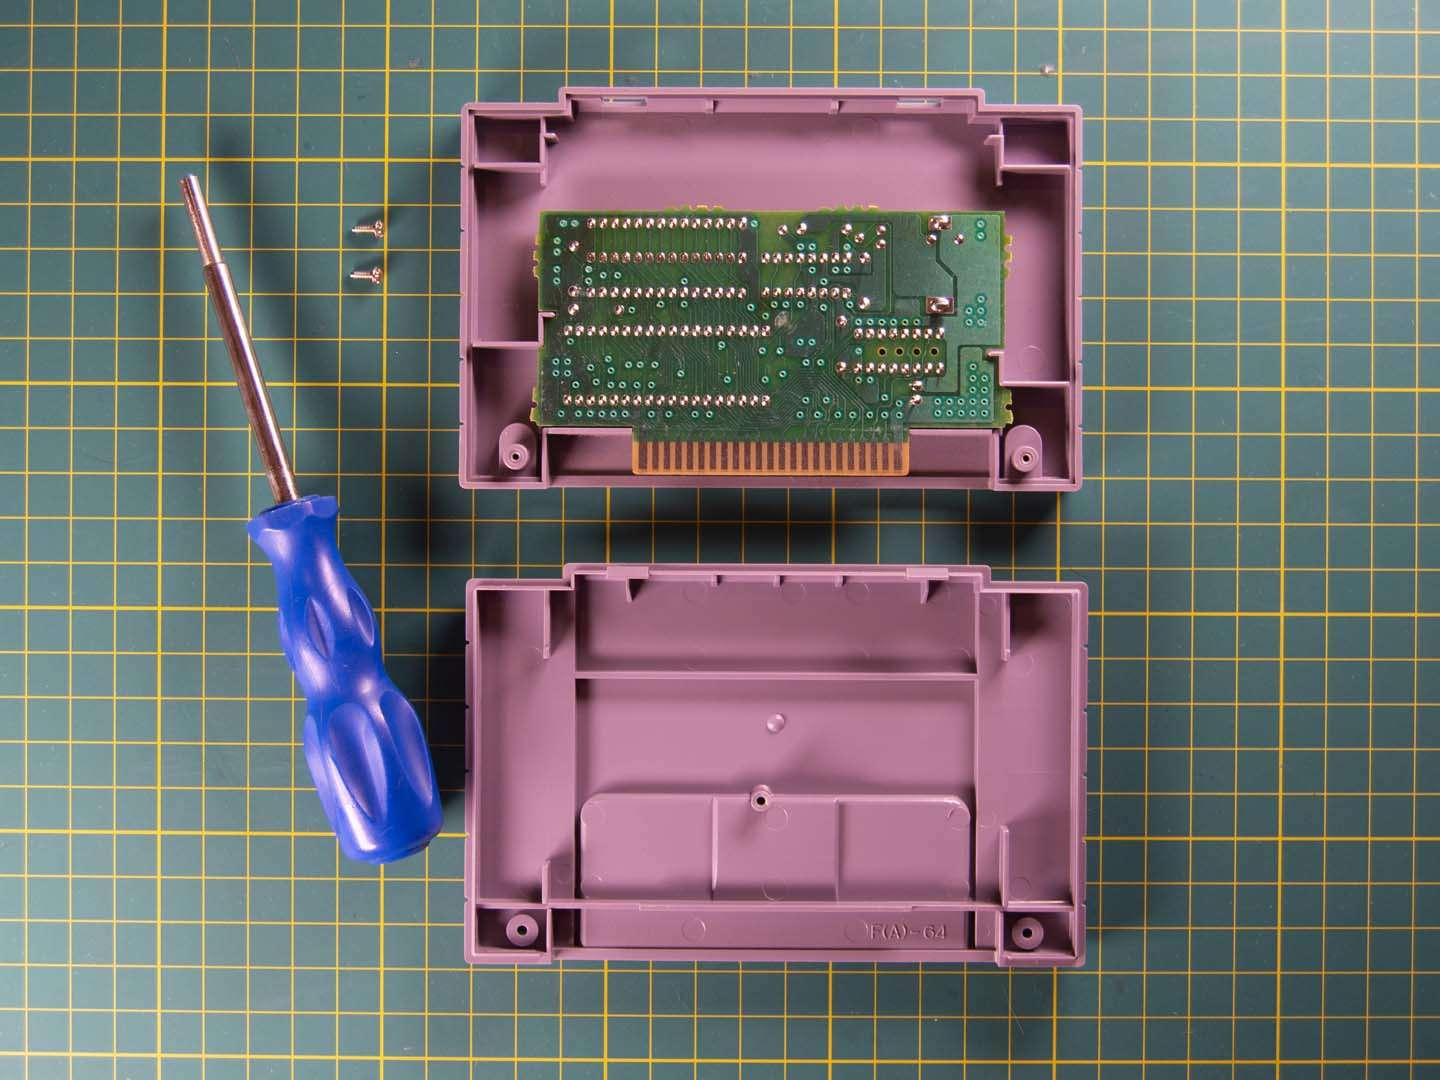 SNES cartridge open